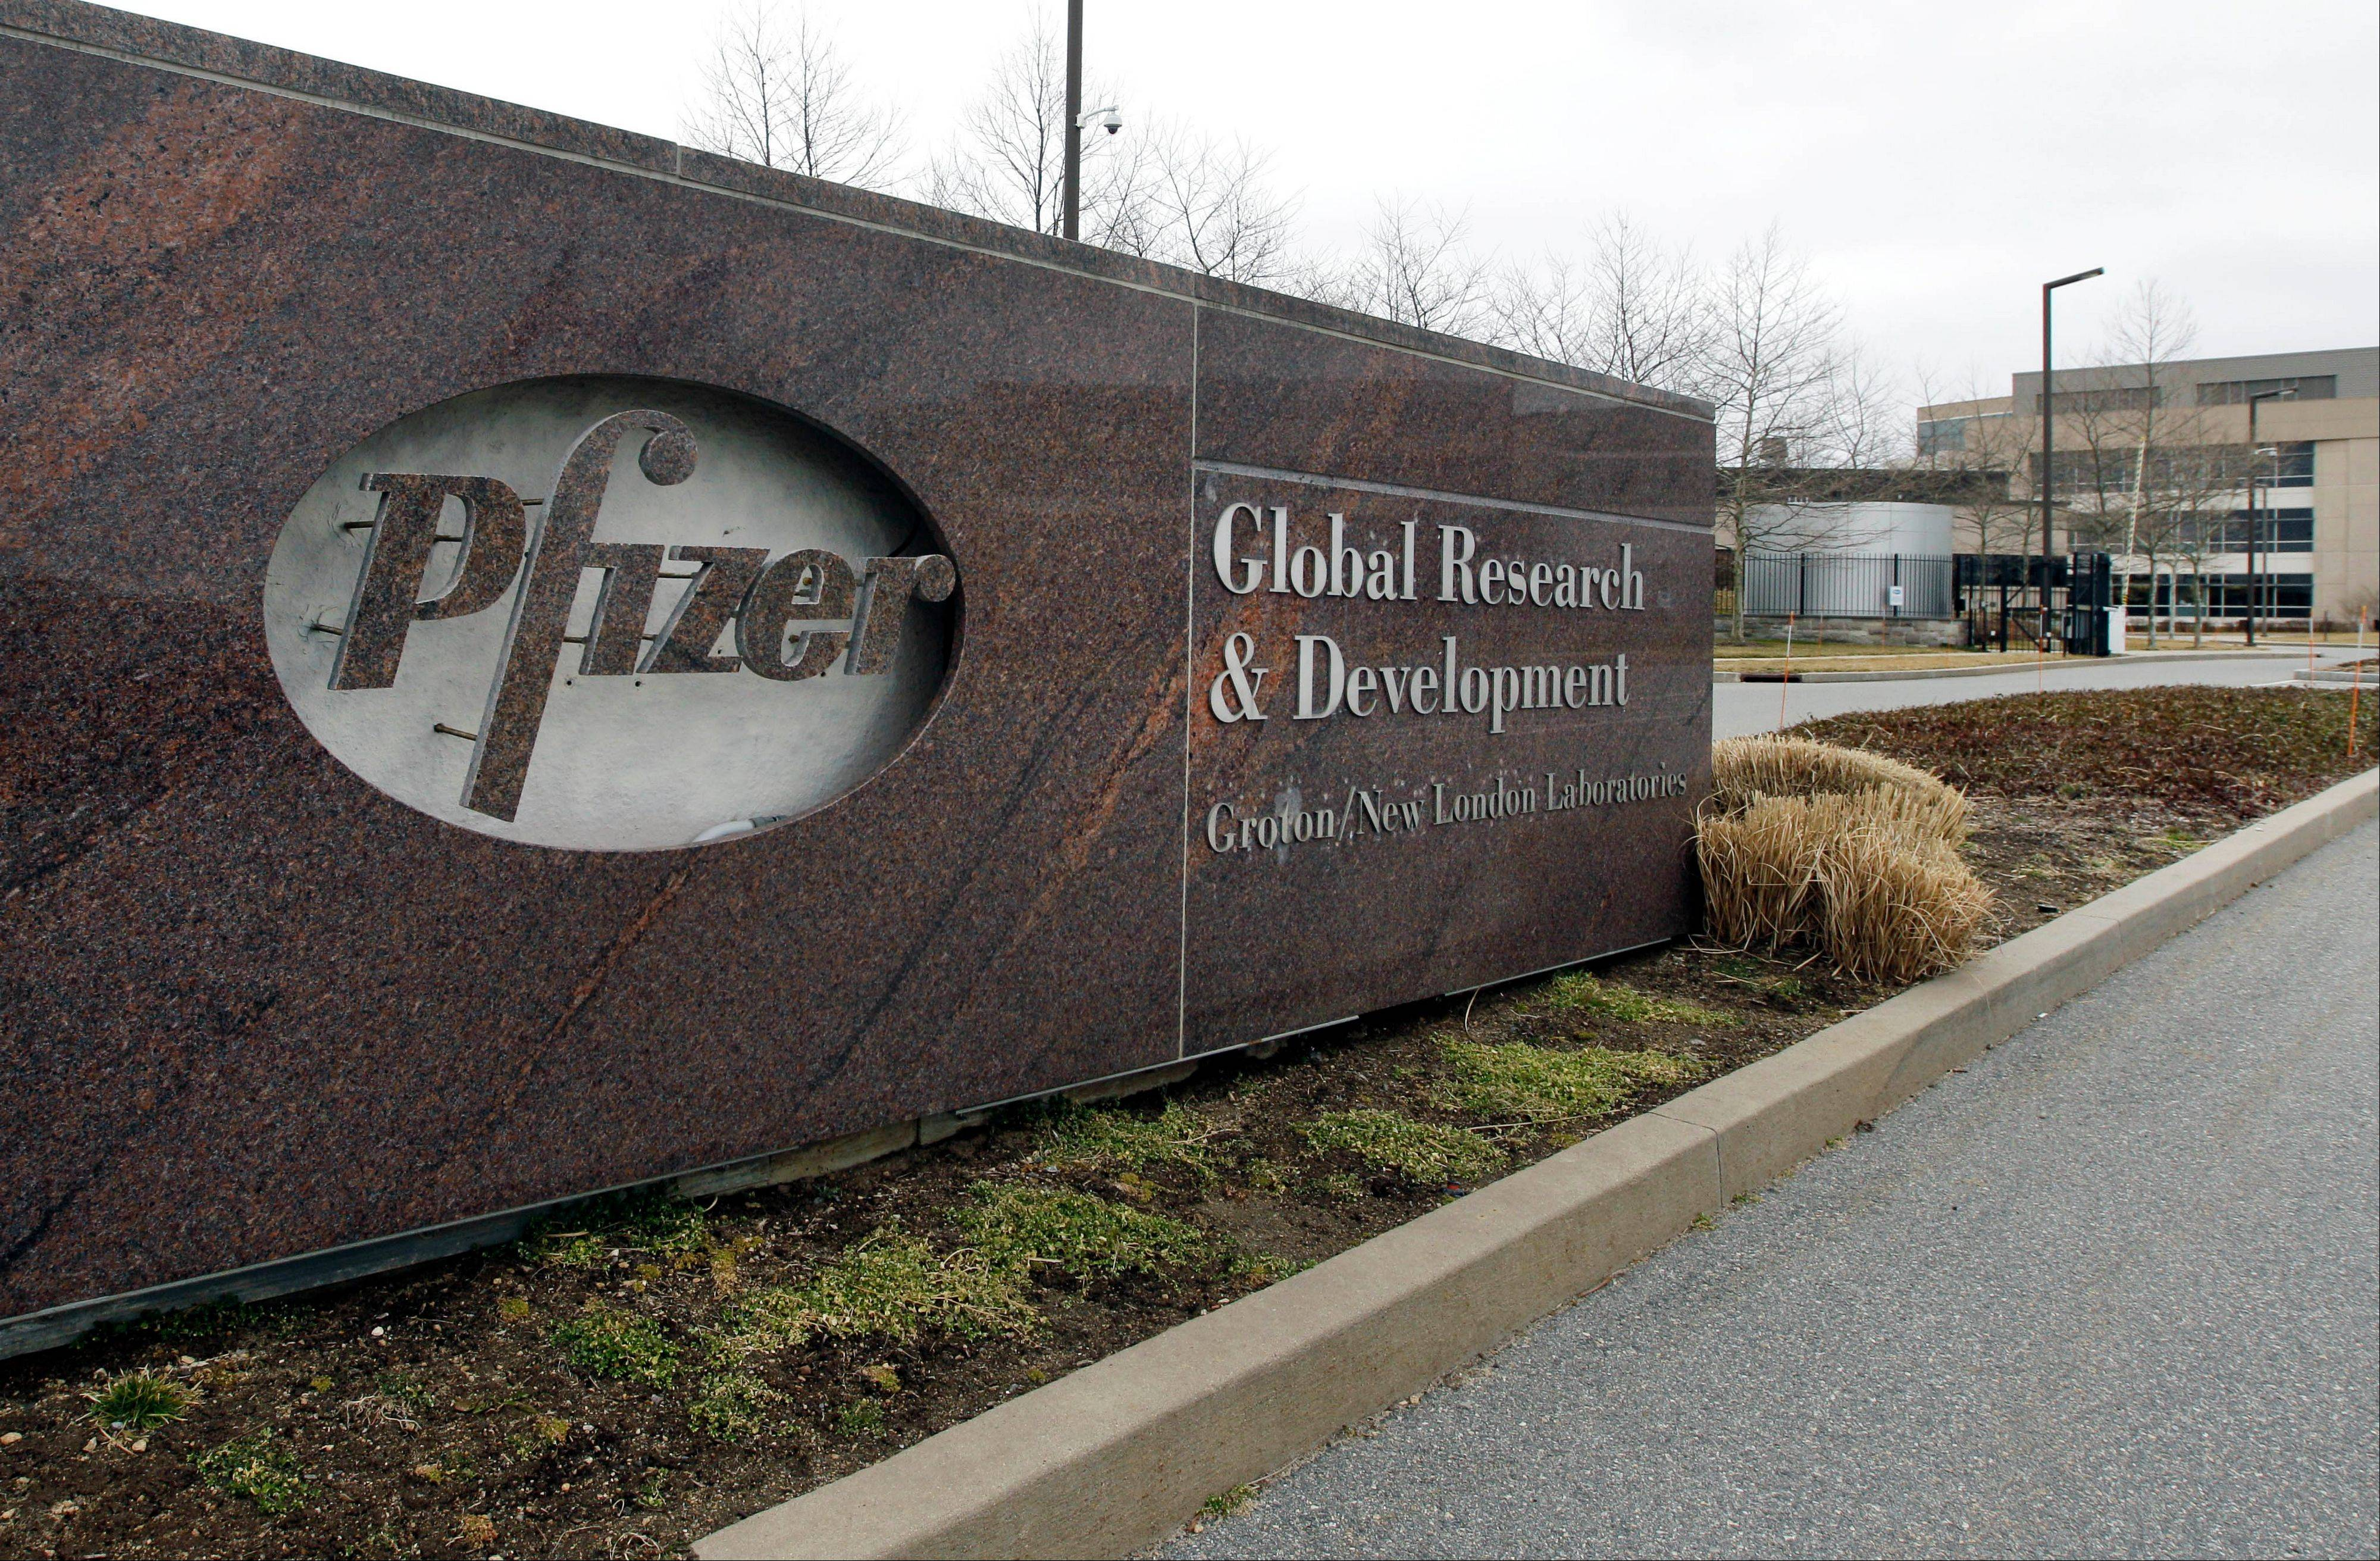 Pfizer Inc., the world's biggest drugmaker, agreed to pay $60.2 million to settle foreign bribery cases it brought to U.S. authorities involving alleged payments paid by employees and agents of subsidiaries.